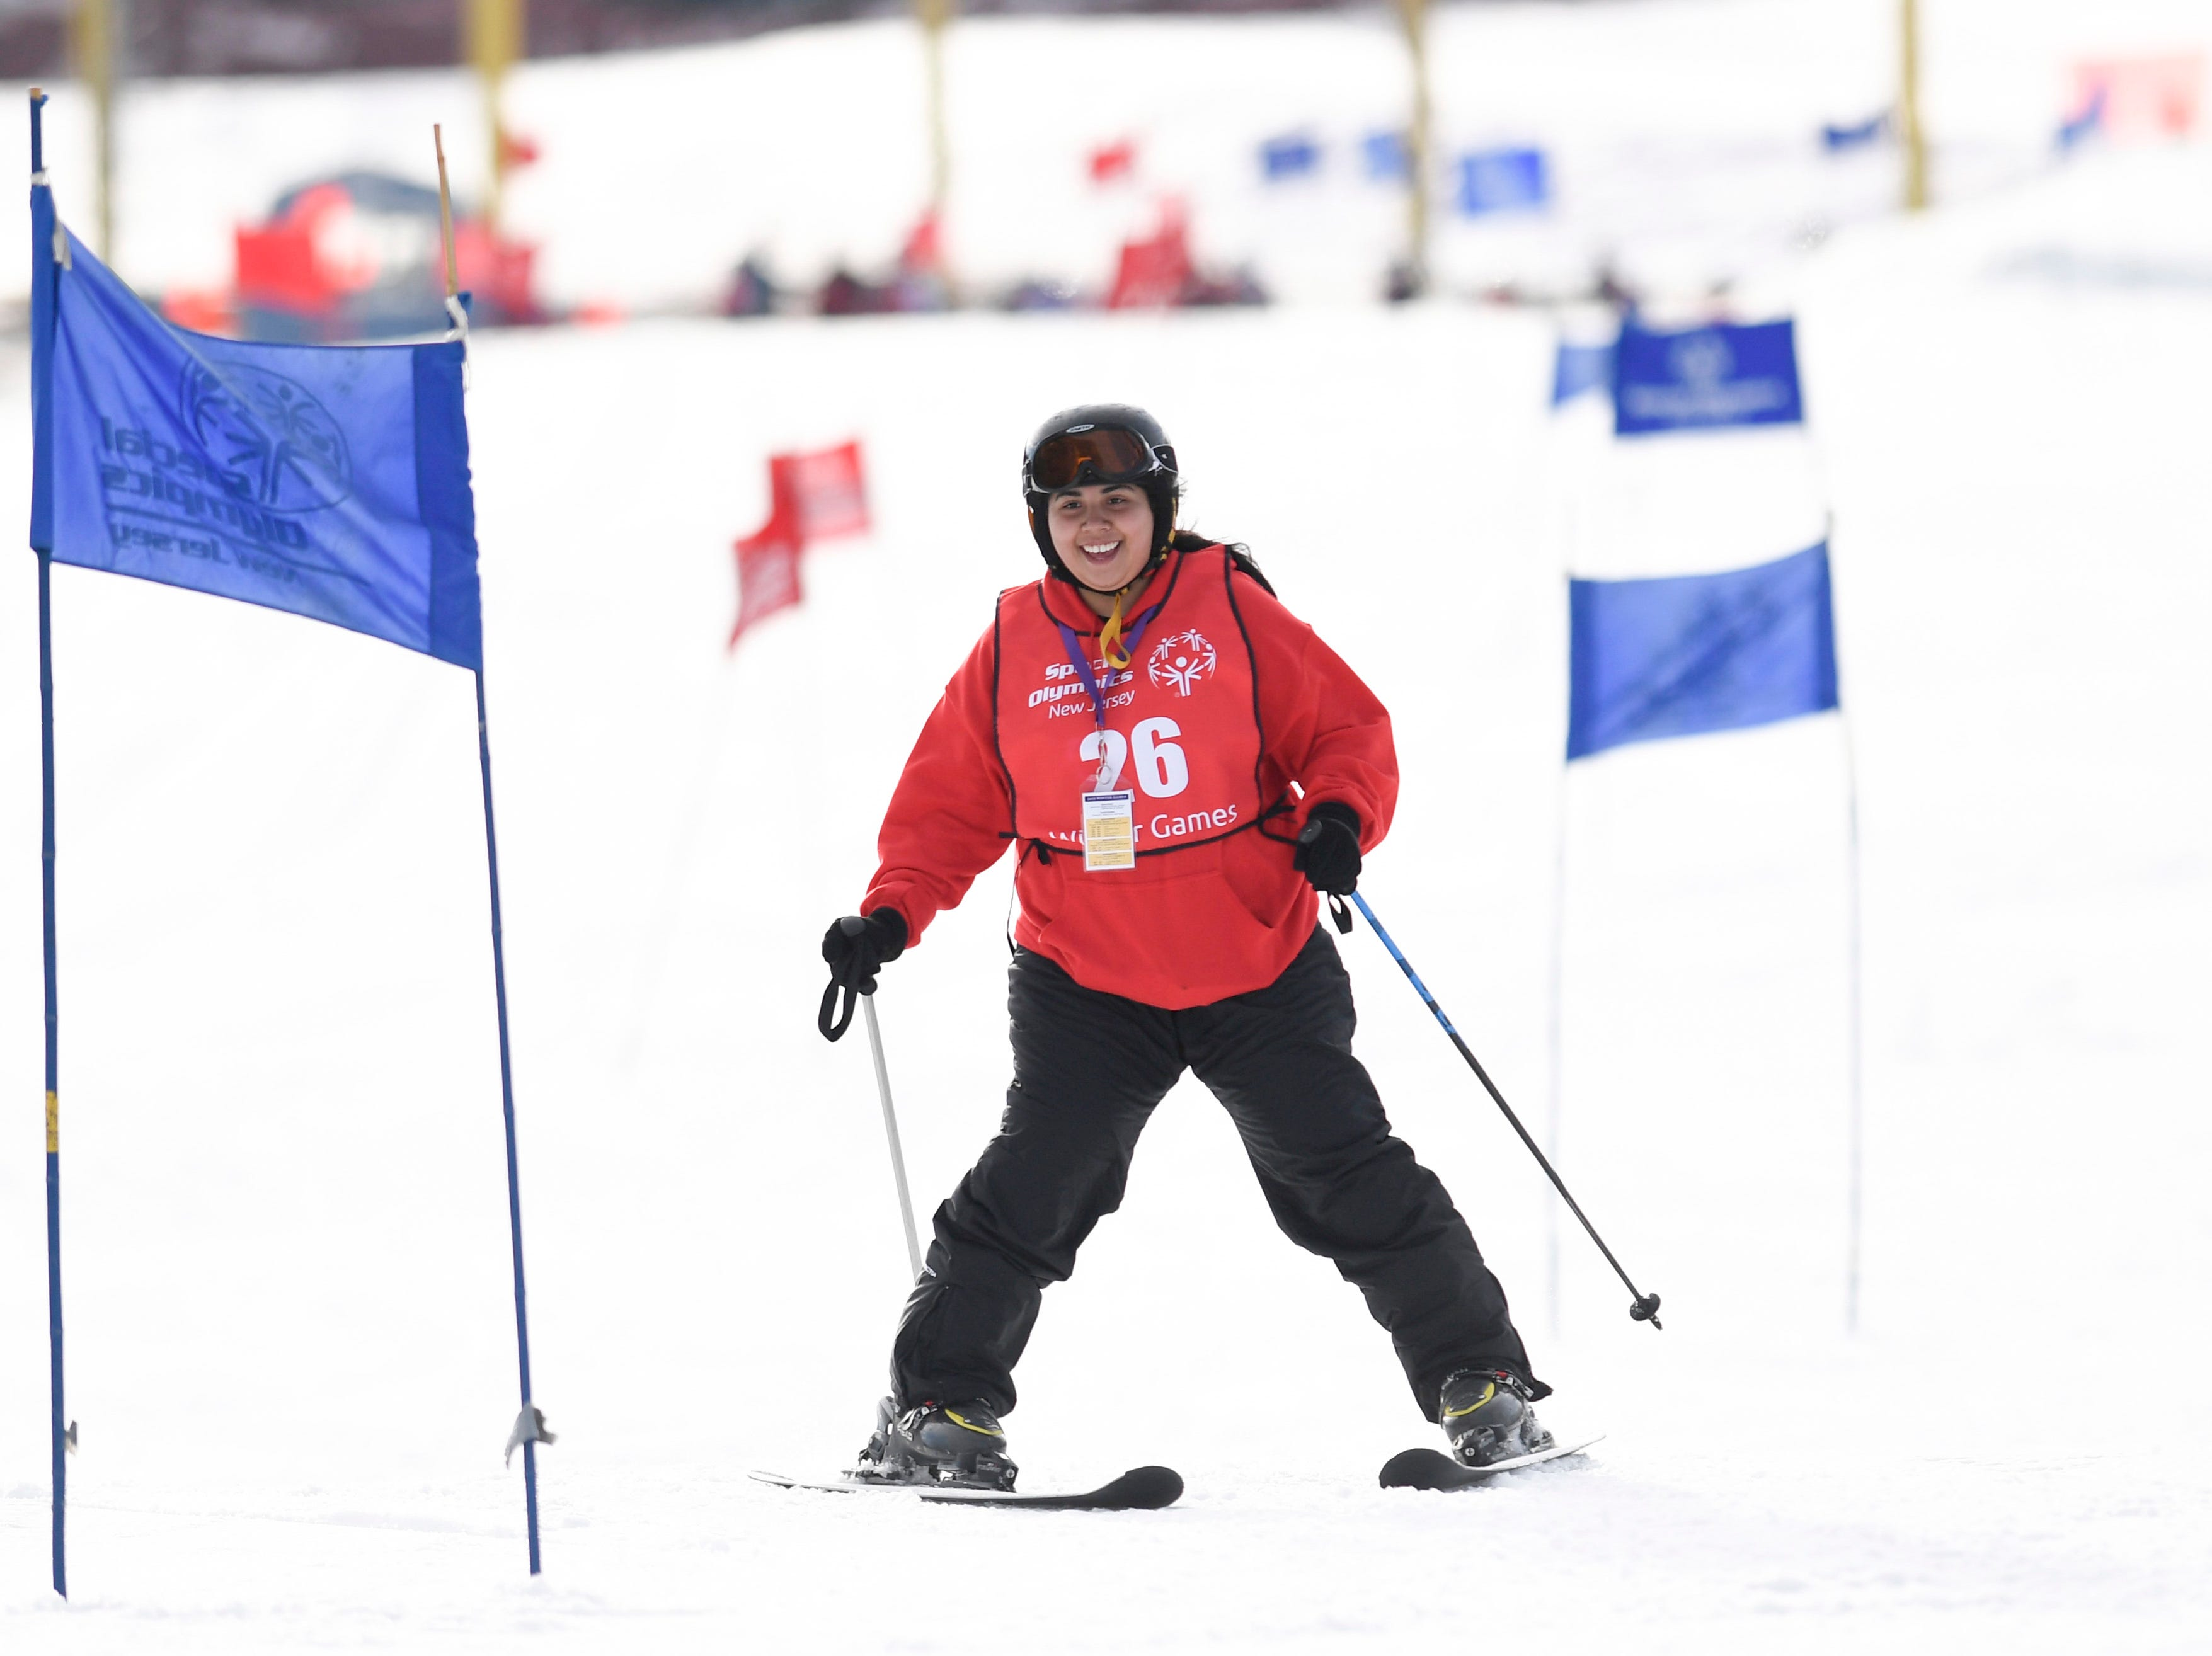 Anne Reyes of Union City competes in the giant slalom during the Special Olympics New Jersey 2019 Winter Games on Tuesday, Feb. 5, 2019, in Vernon.